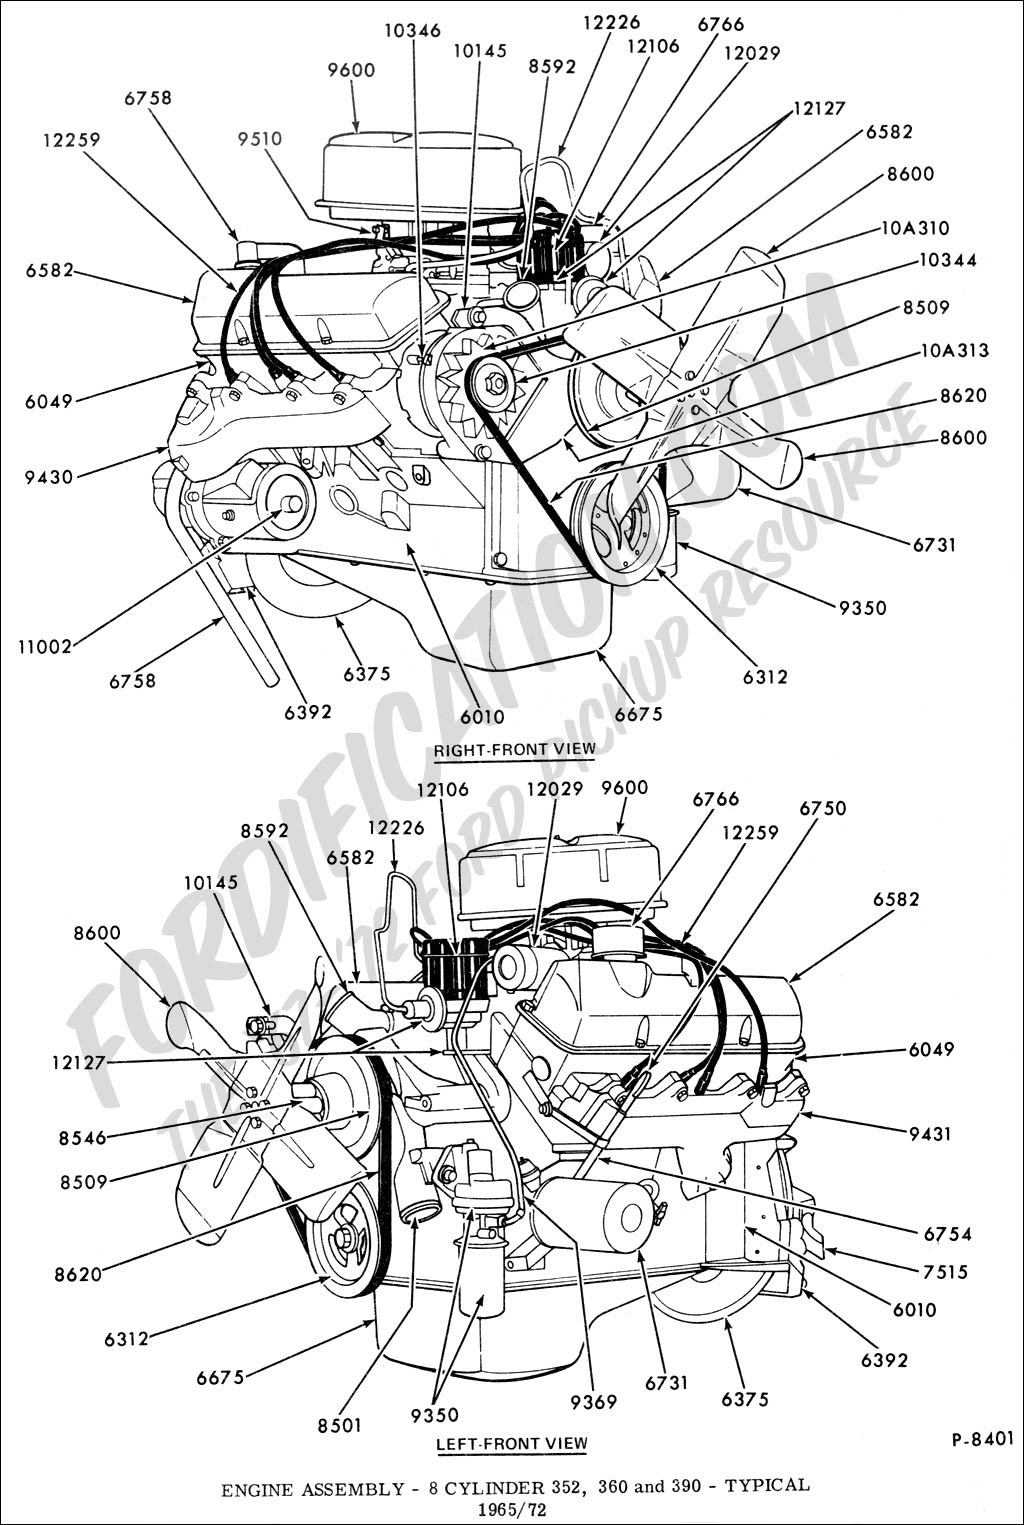 ford truck technical drawings and schematics section e engine engine assembly 8 cylinder 352 360 390 fe typical